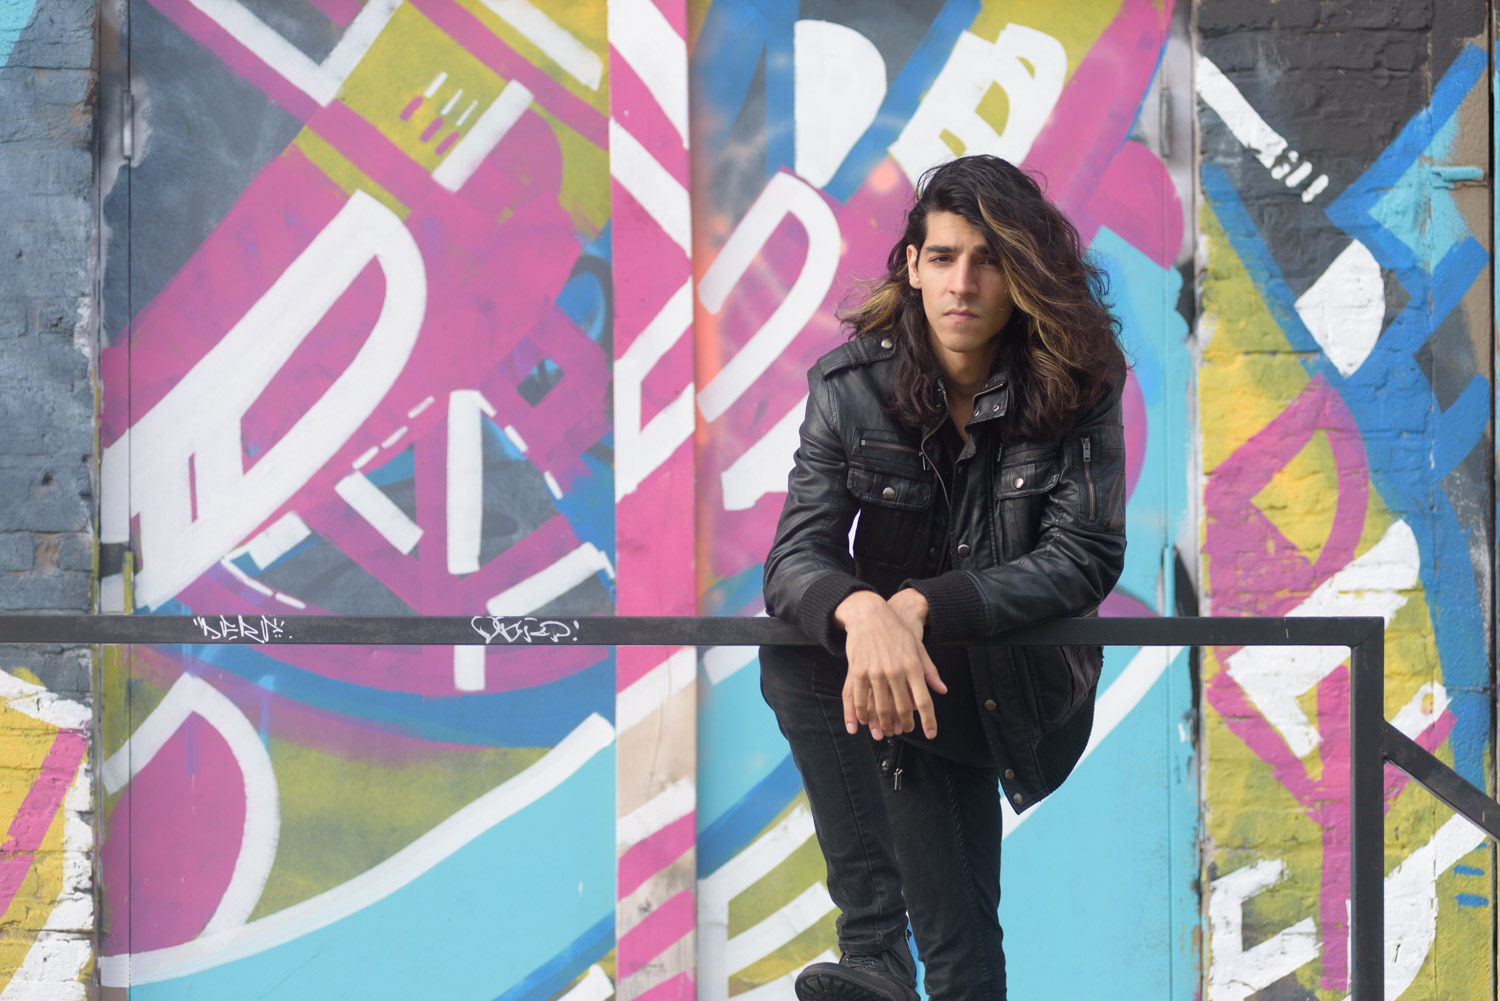 portrait of Matthew James Rao leaning against a railing towards the camera wearing a black leather jacket and pants in front of a pink, blue, yellow, and white graffiti wall